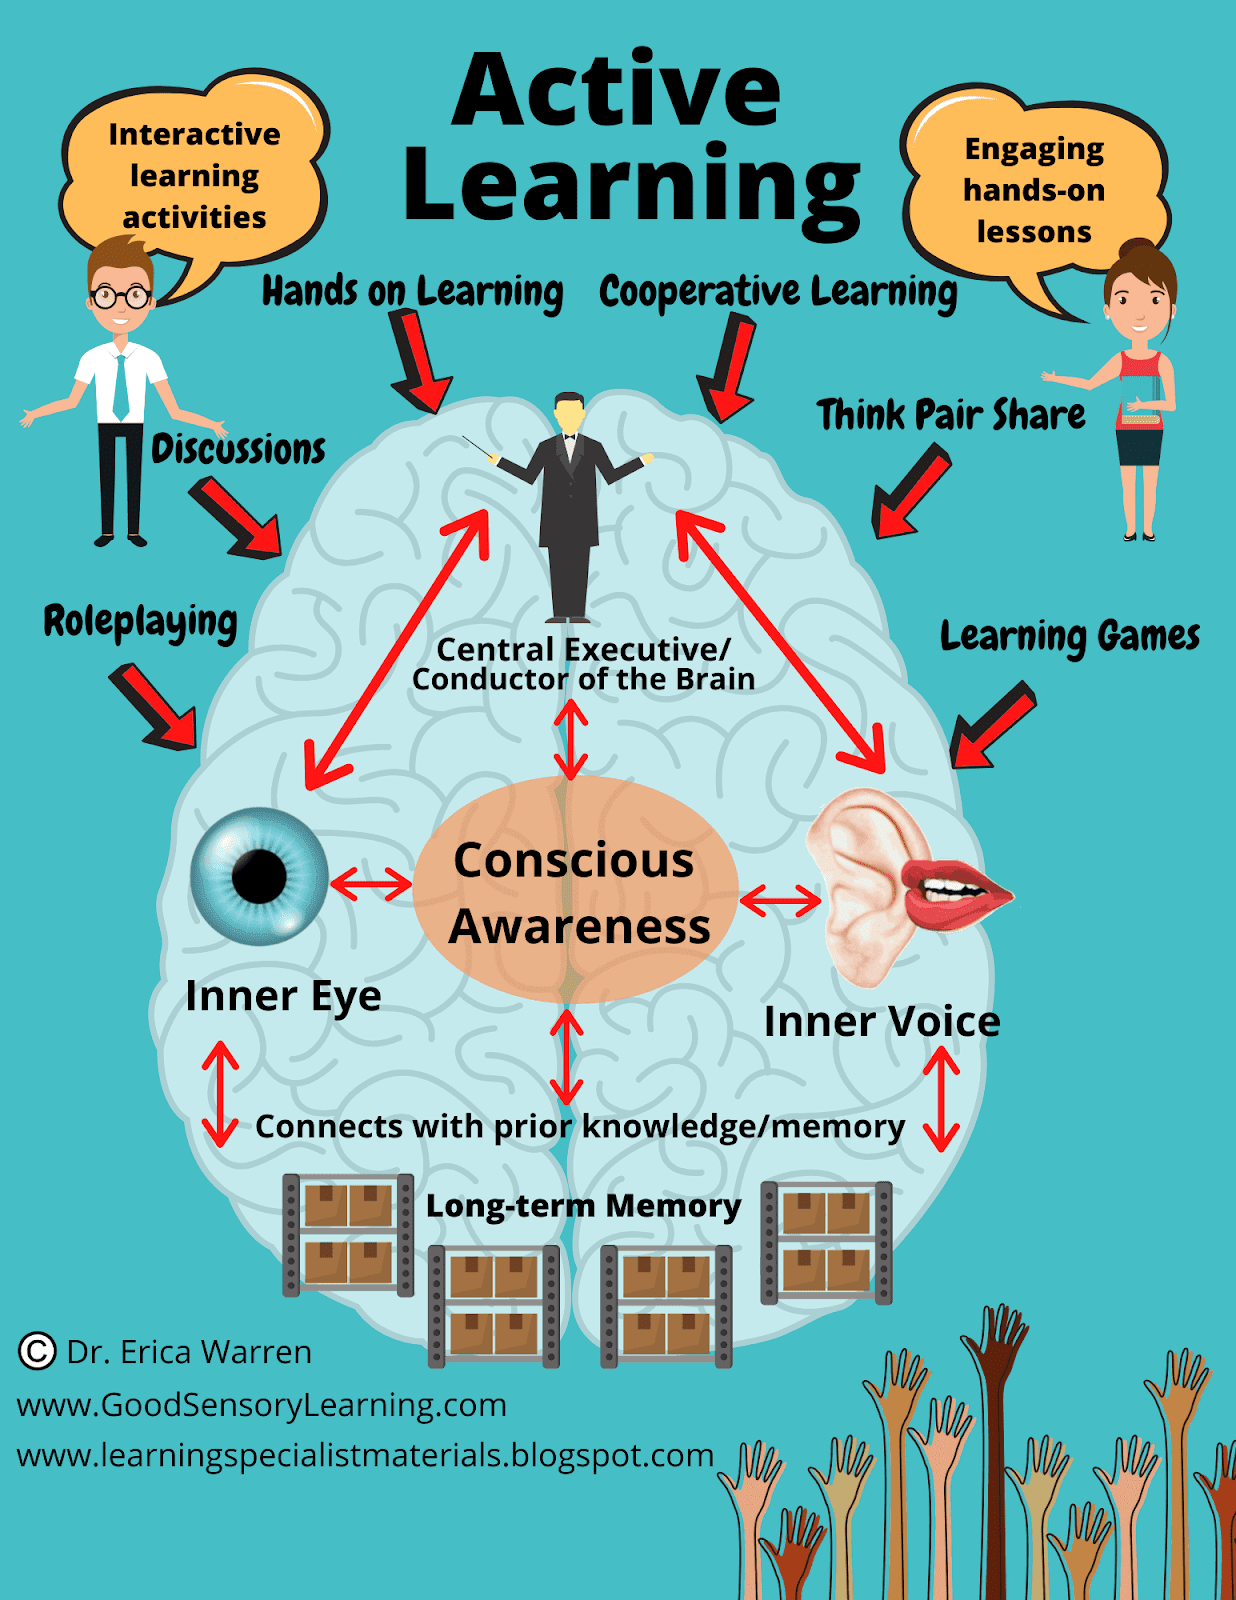 how to become an active learner